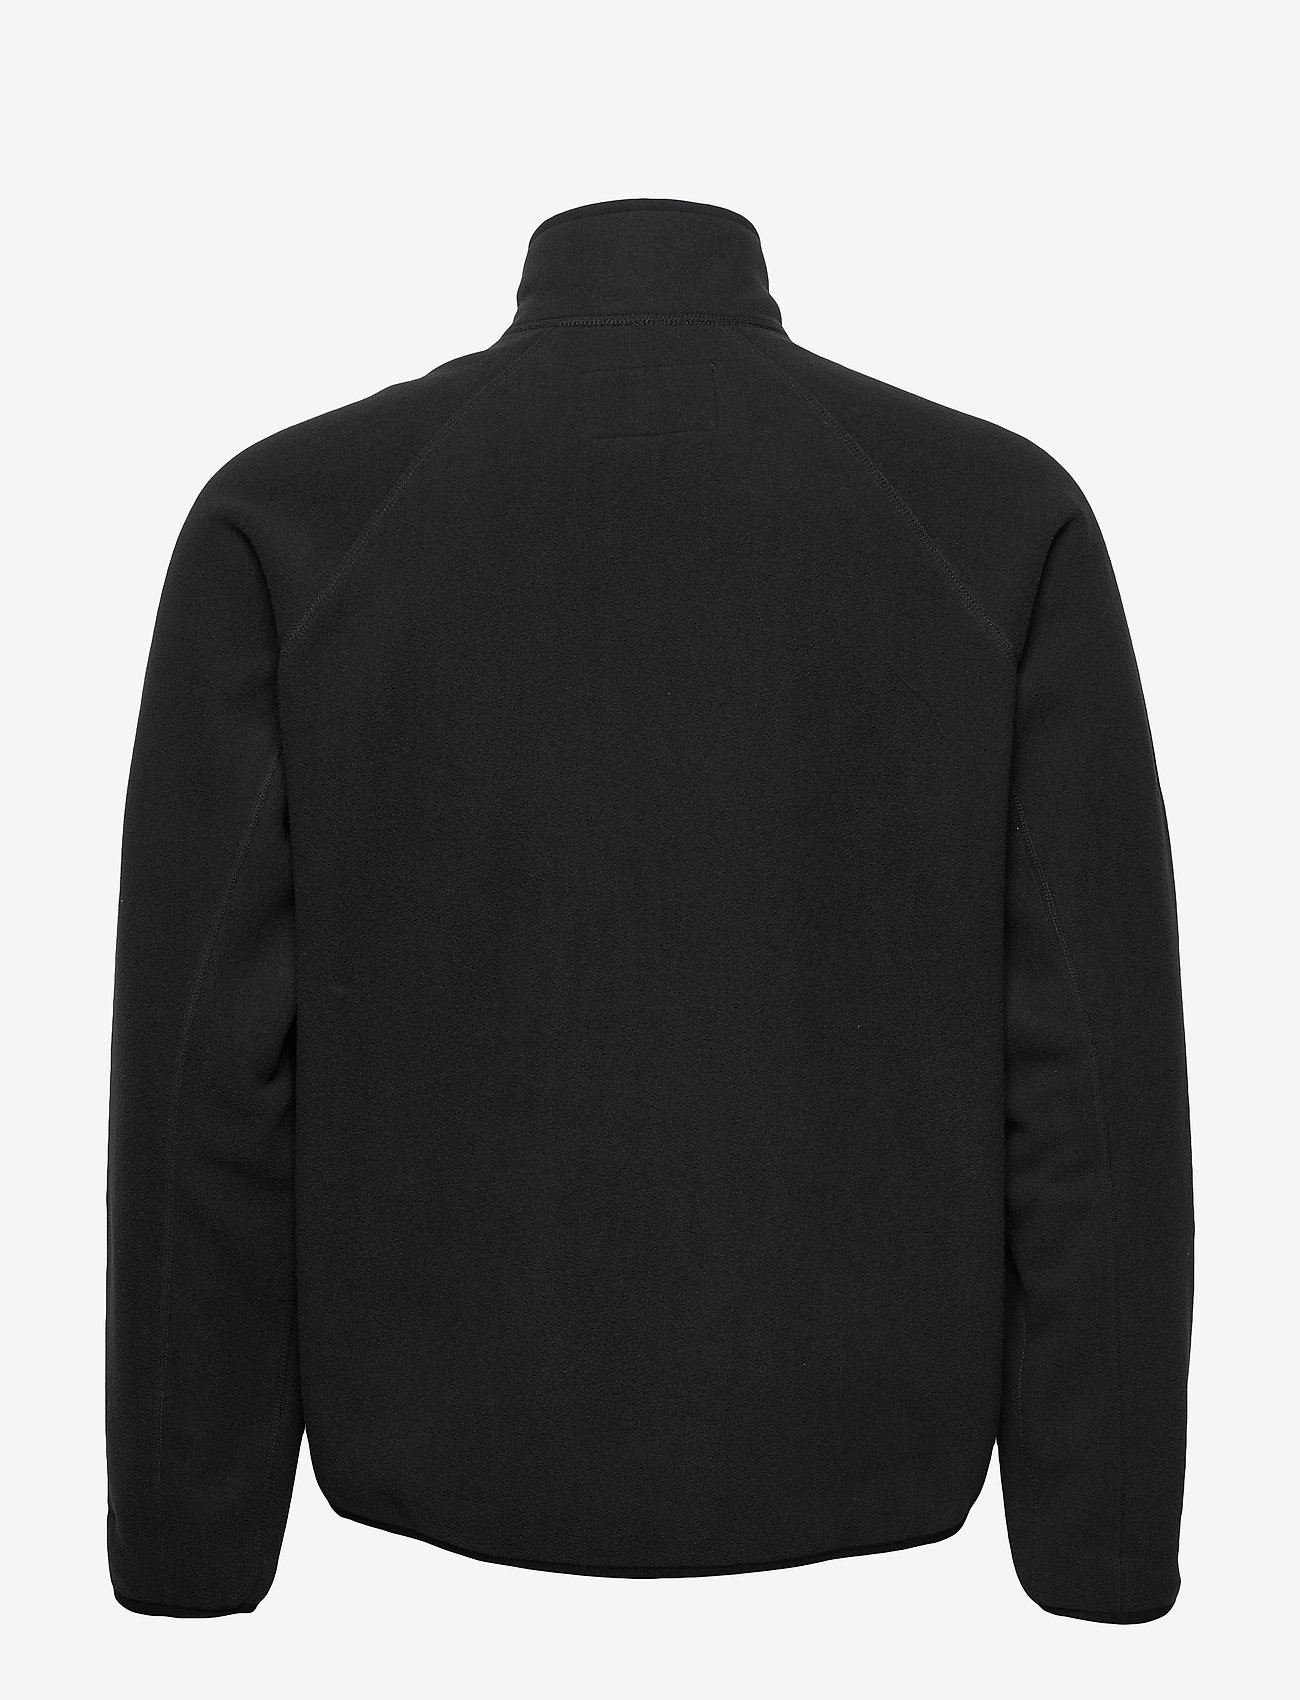 HALO - HALO ATW Zip Fleece - oberteile - black - 1